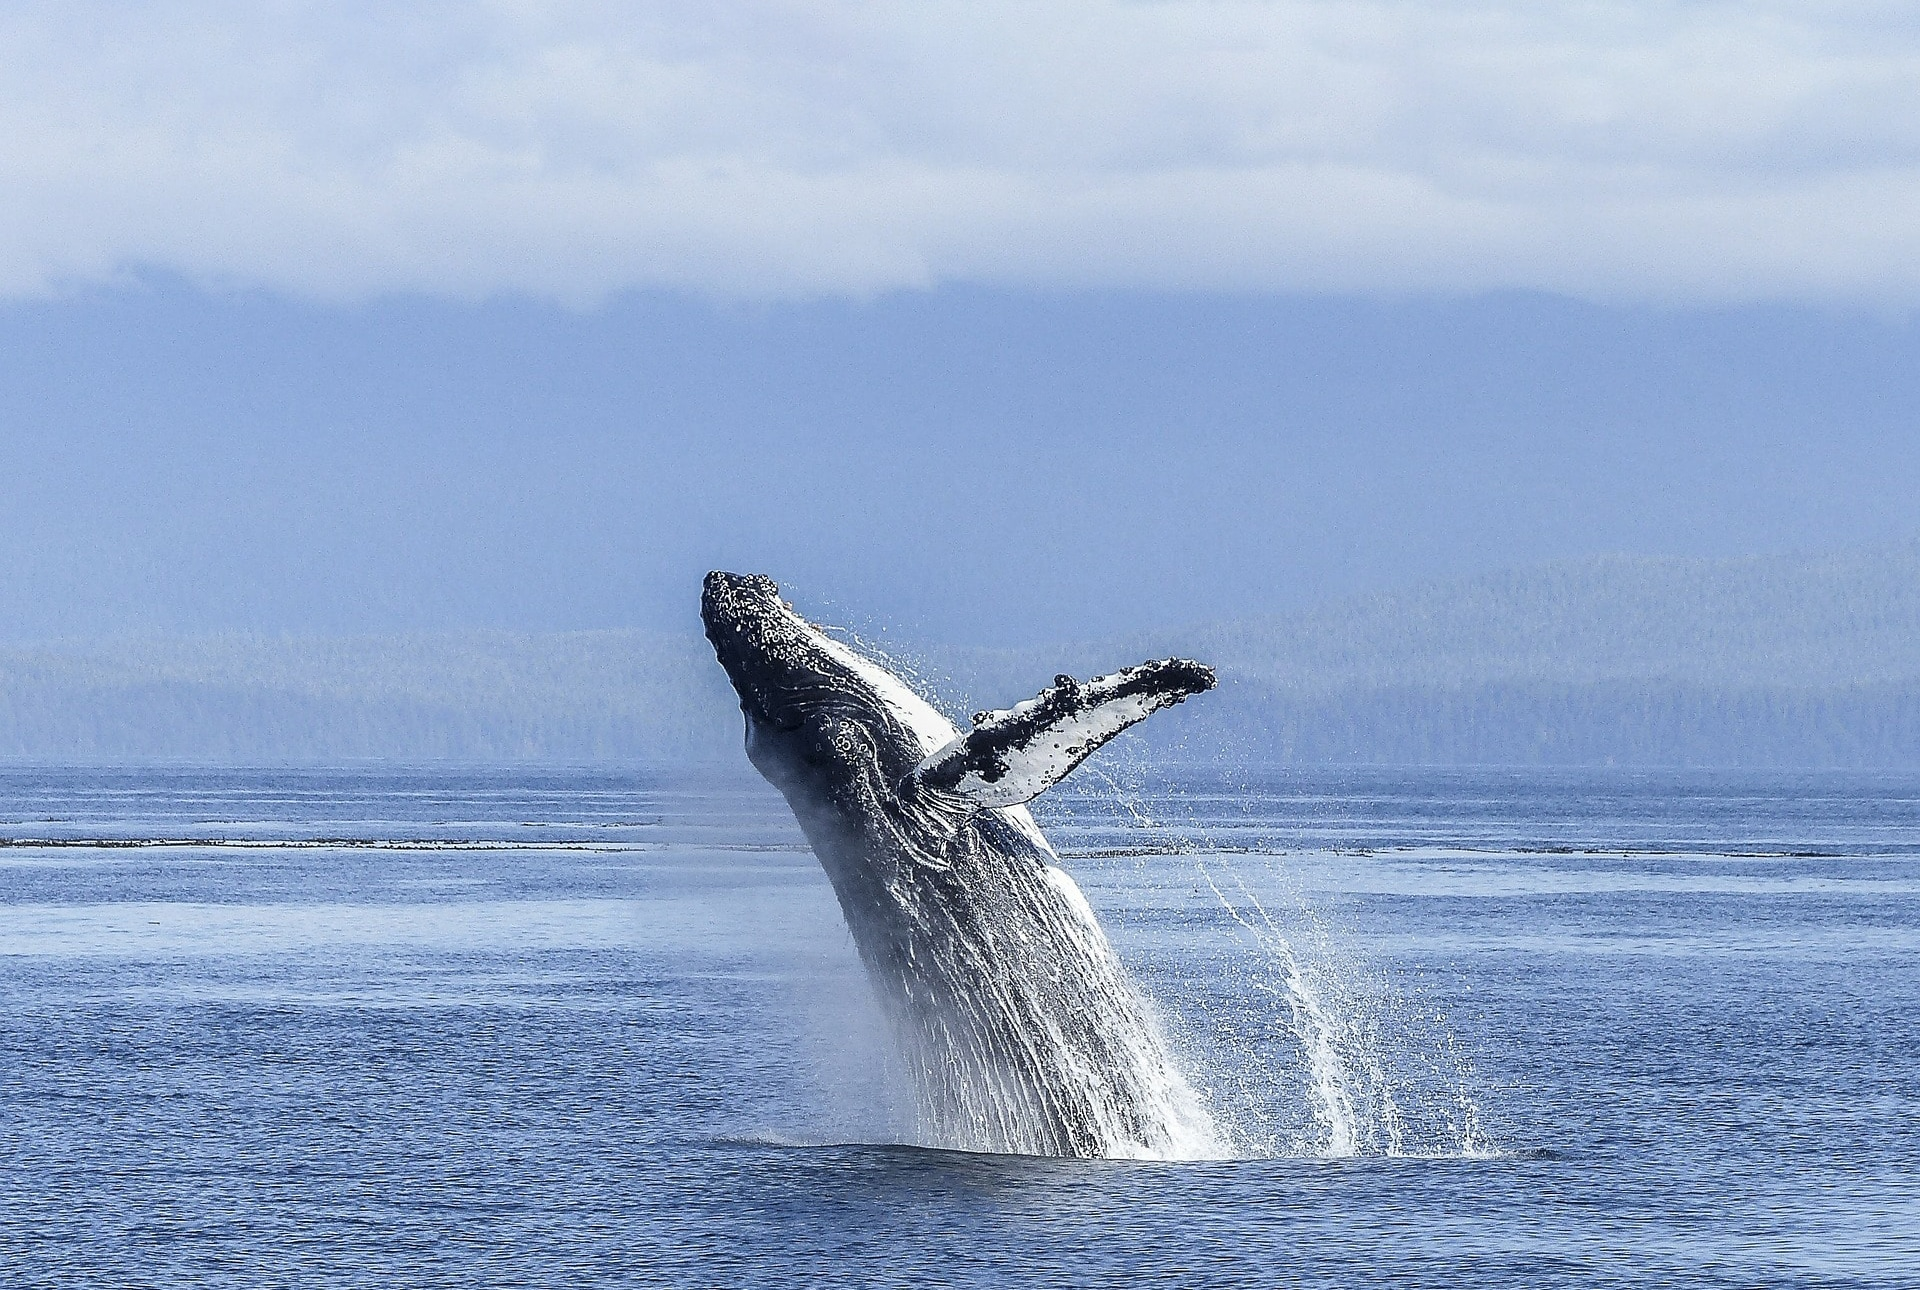 Ecotourism Adventure —A humpback whale explodes out of the water with coast in the background.